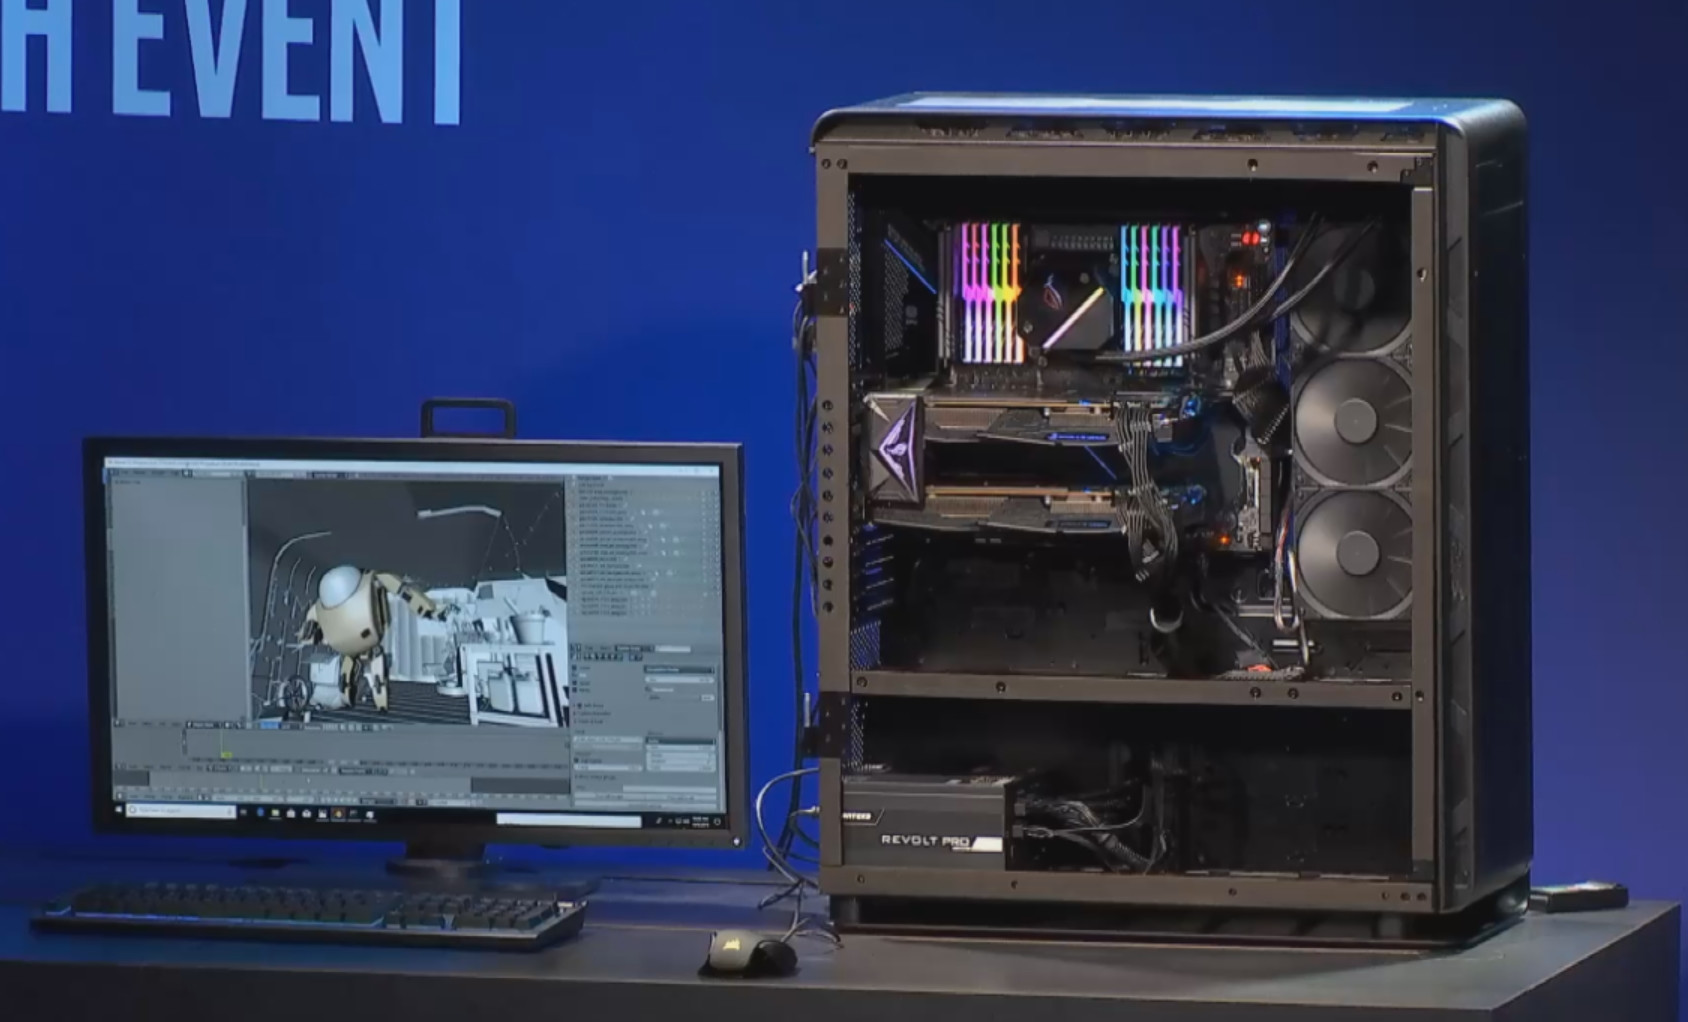 Intel Xeon W 3175X 1 - Intel Xeon W-3175X Has 28 Cores 56 Threads and It's a Beast for Workstations